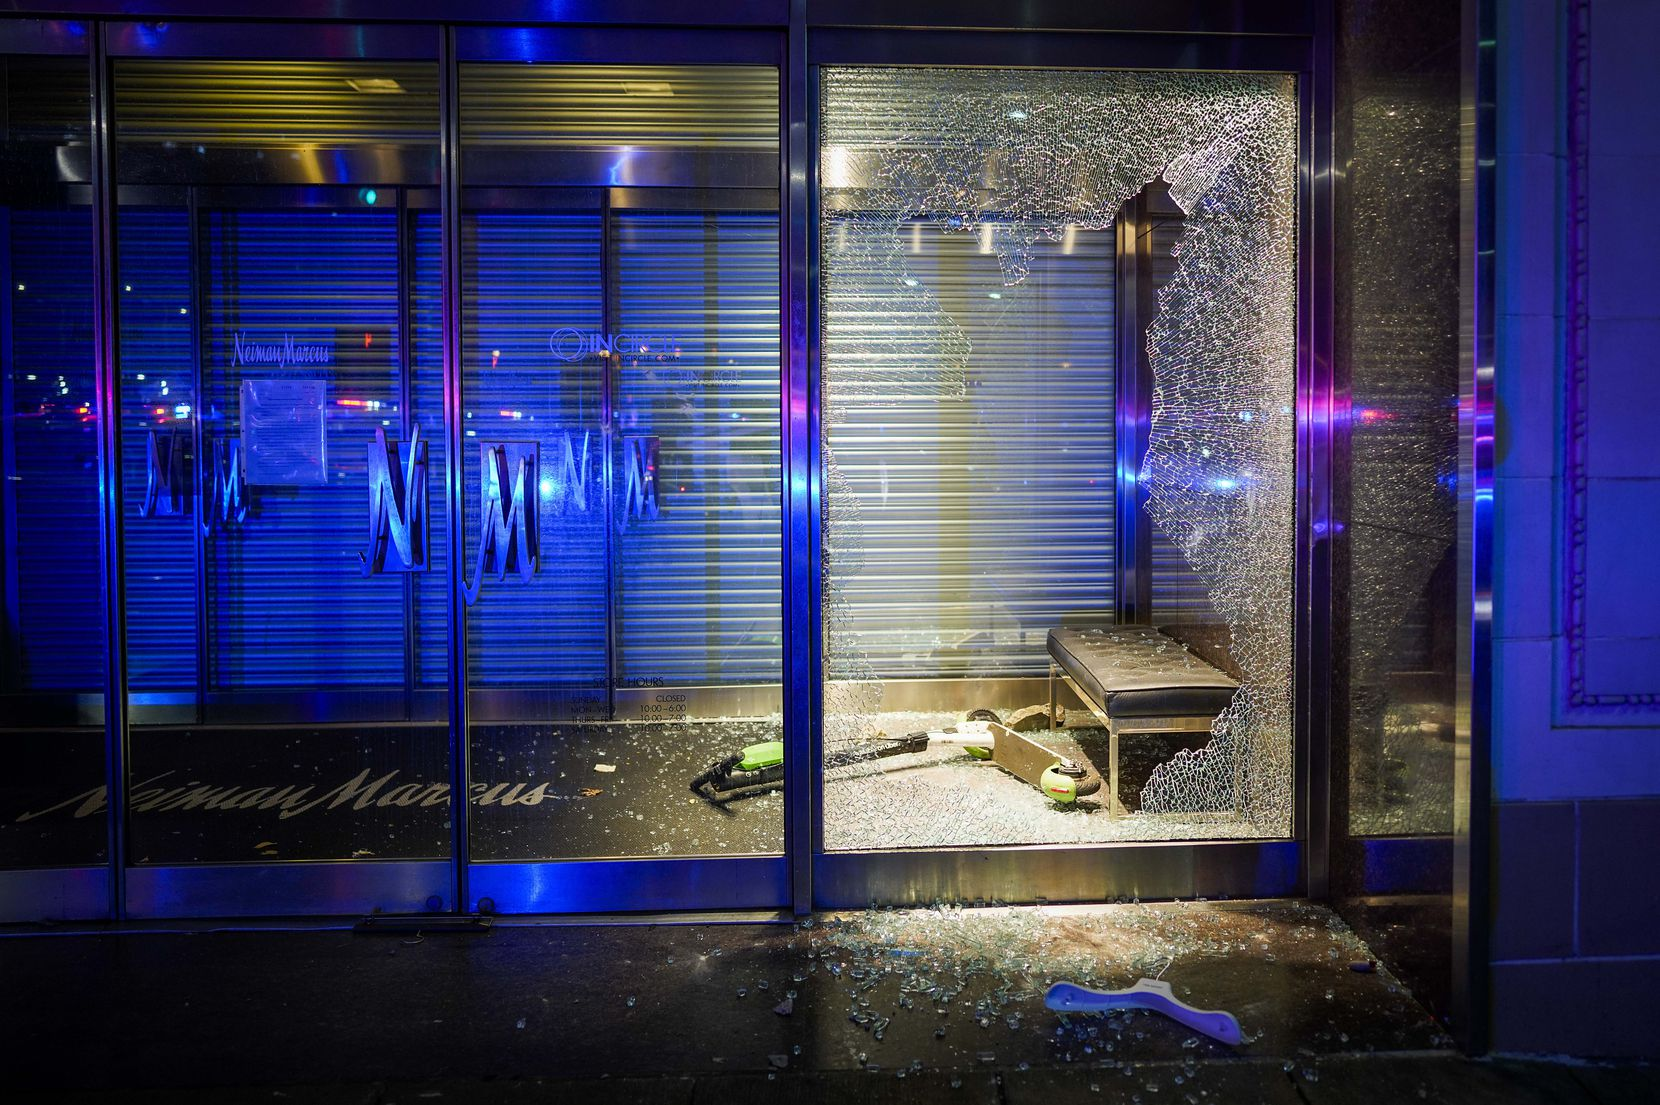 A rental scooter rest amidst broken glass after windows were smashed at the Nieman Marcus store downtown following a protest against police brutality in the early morning hours of Saturday, May 30, 2020, in Dallas. The protest against police brutality was organized by Next Generation Action Network in response to the in-custody death of George Floyd in Minneapolis.